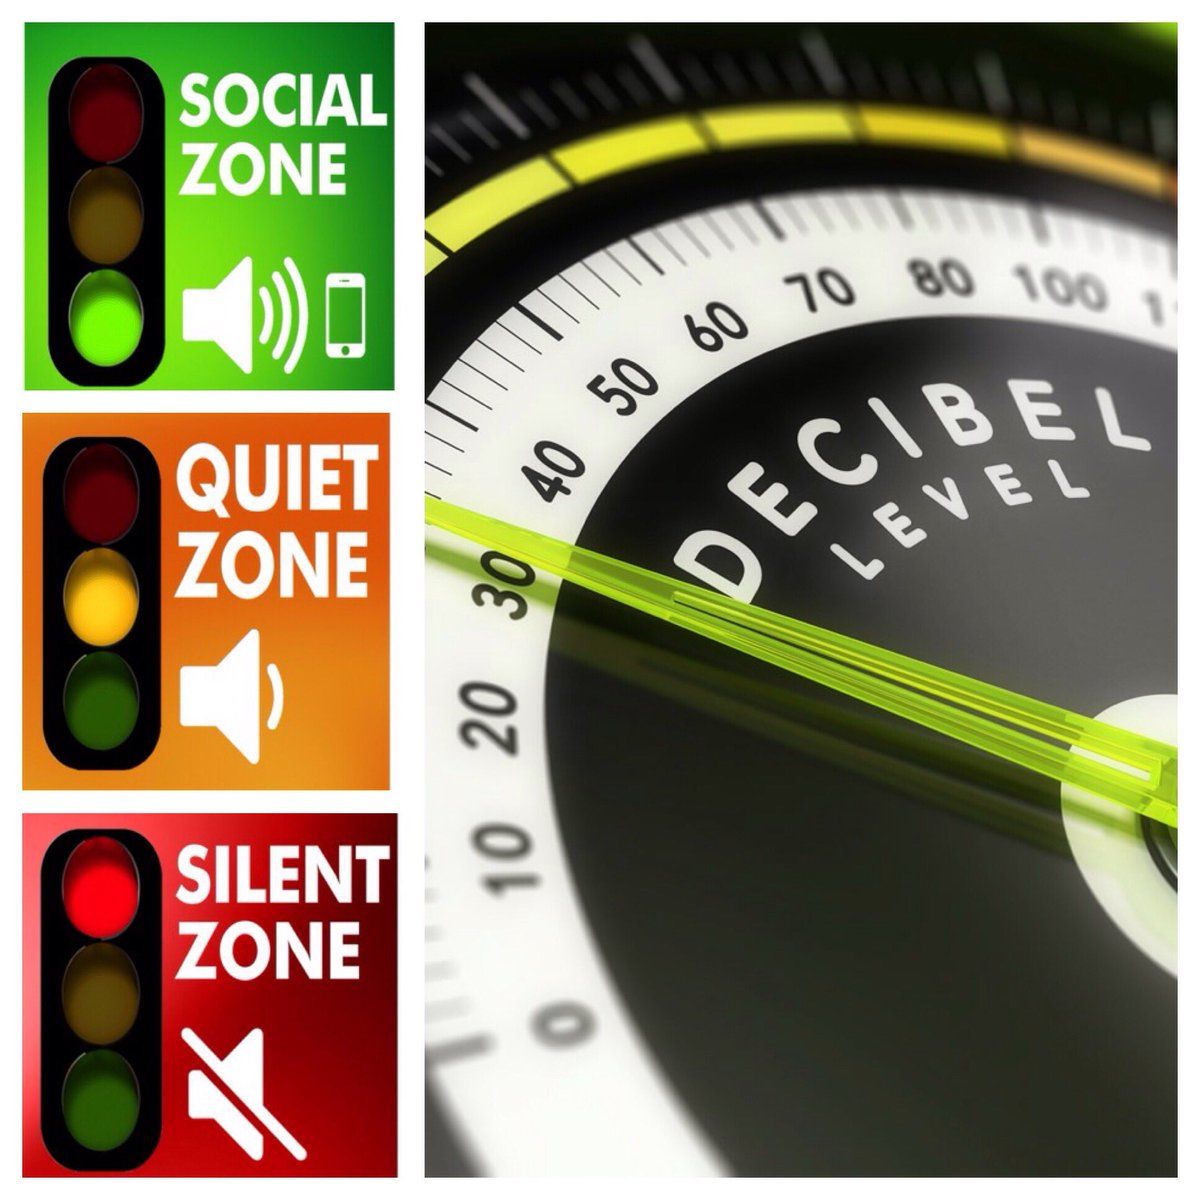 Noise clipart quiet zone Exceed levels Operation please can